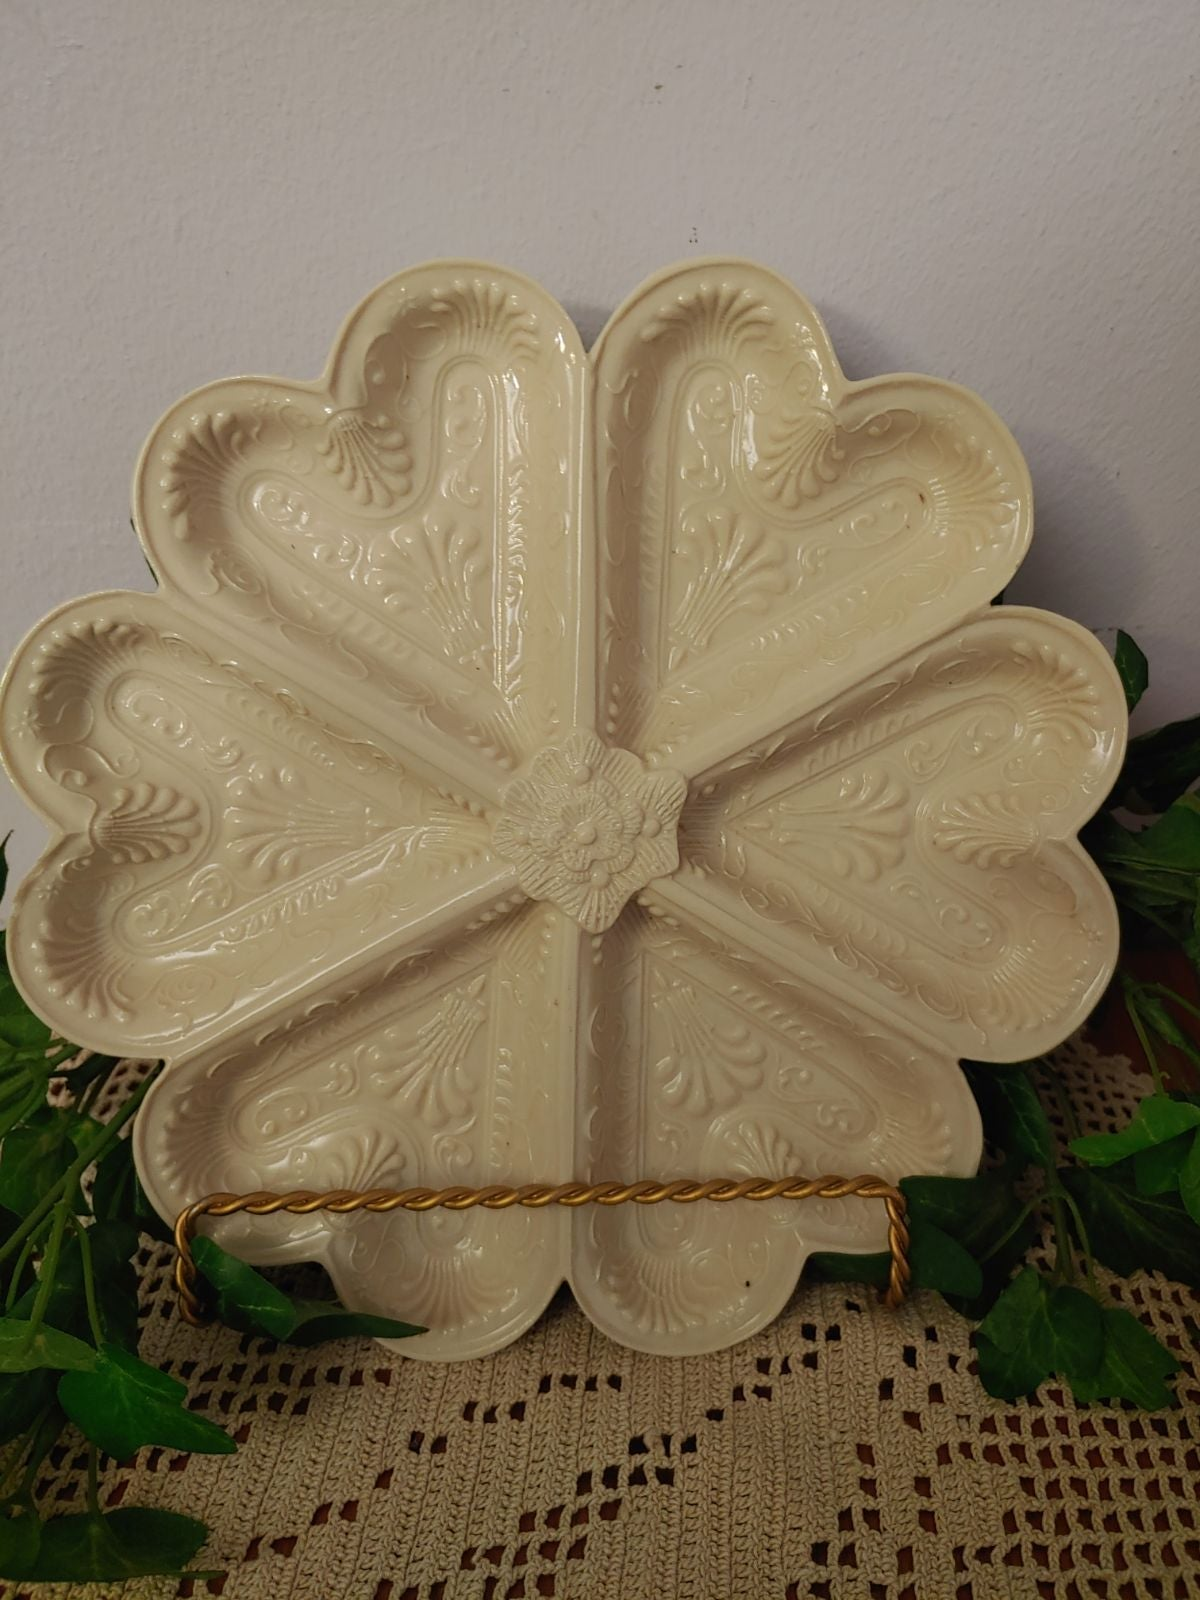 MMA cookie mold Staffordshire 1750